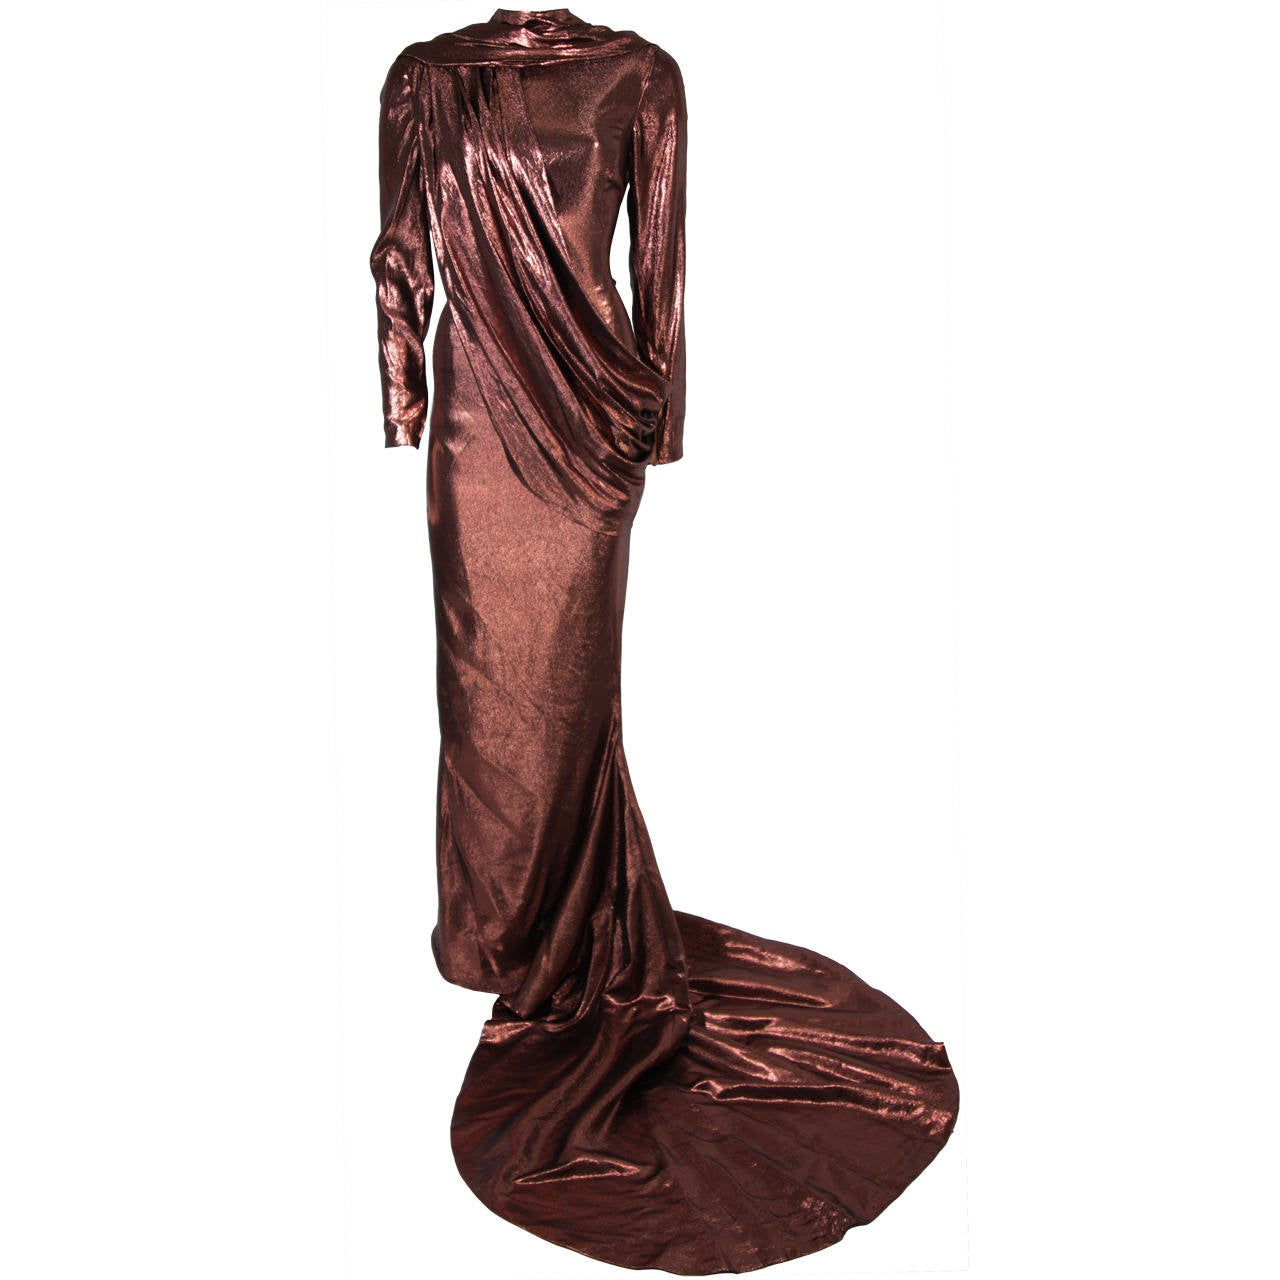 Pierre Balmain Runway Couture Copper Metallic Silk Gown Size Small Circa 1980's